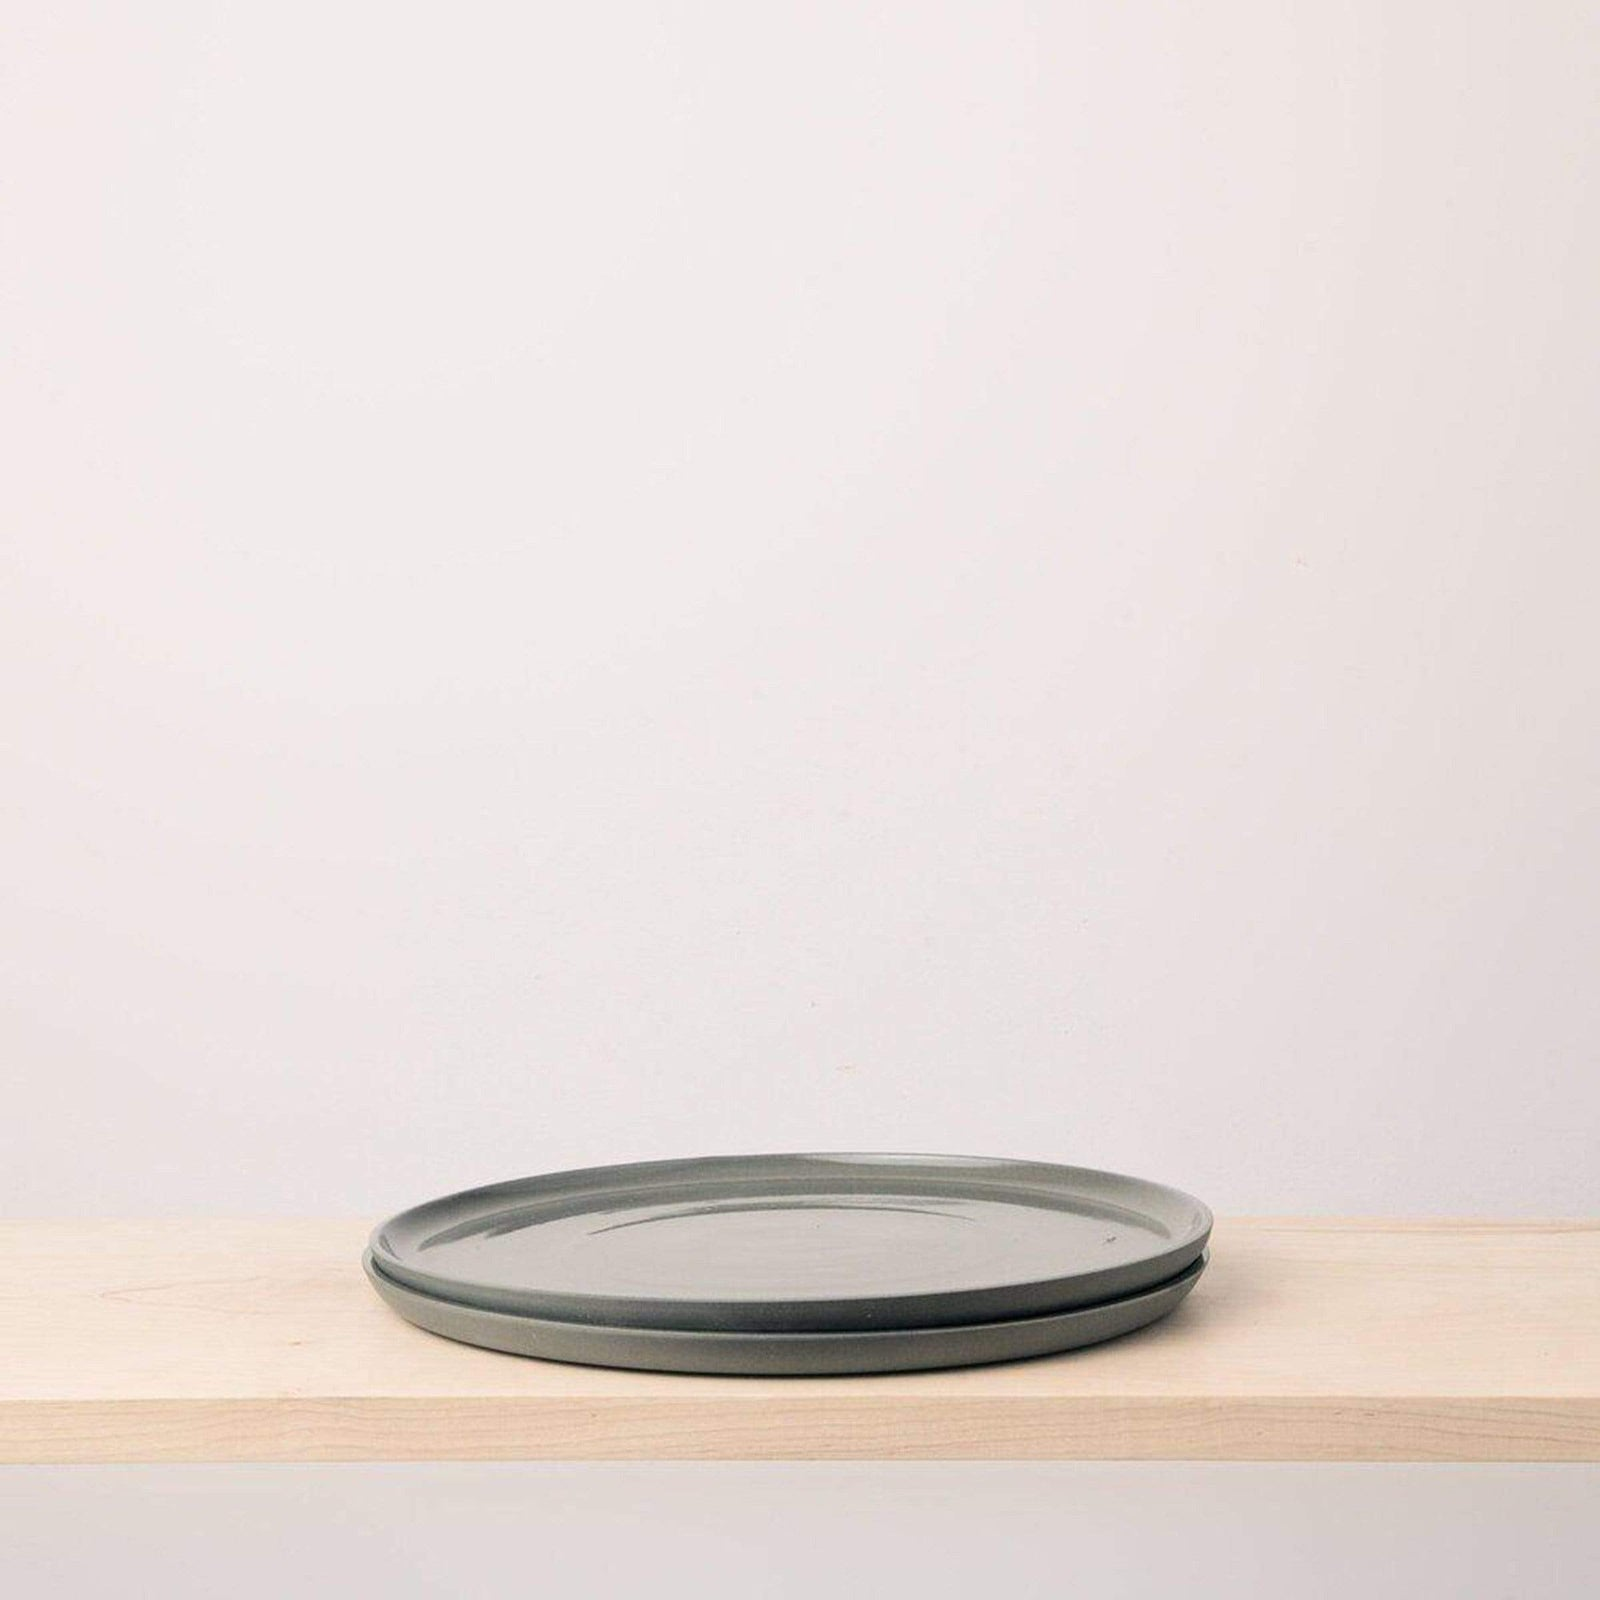 L'Impatience Kitchenware L'insolence Plate